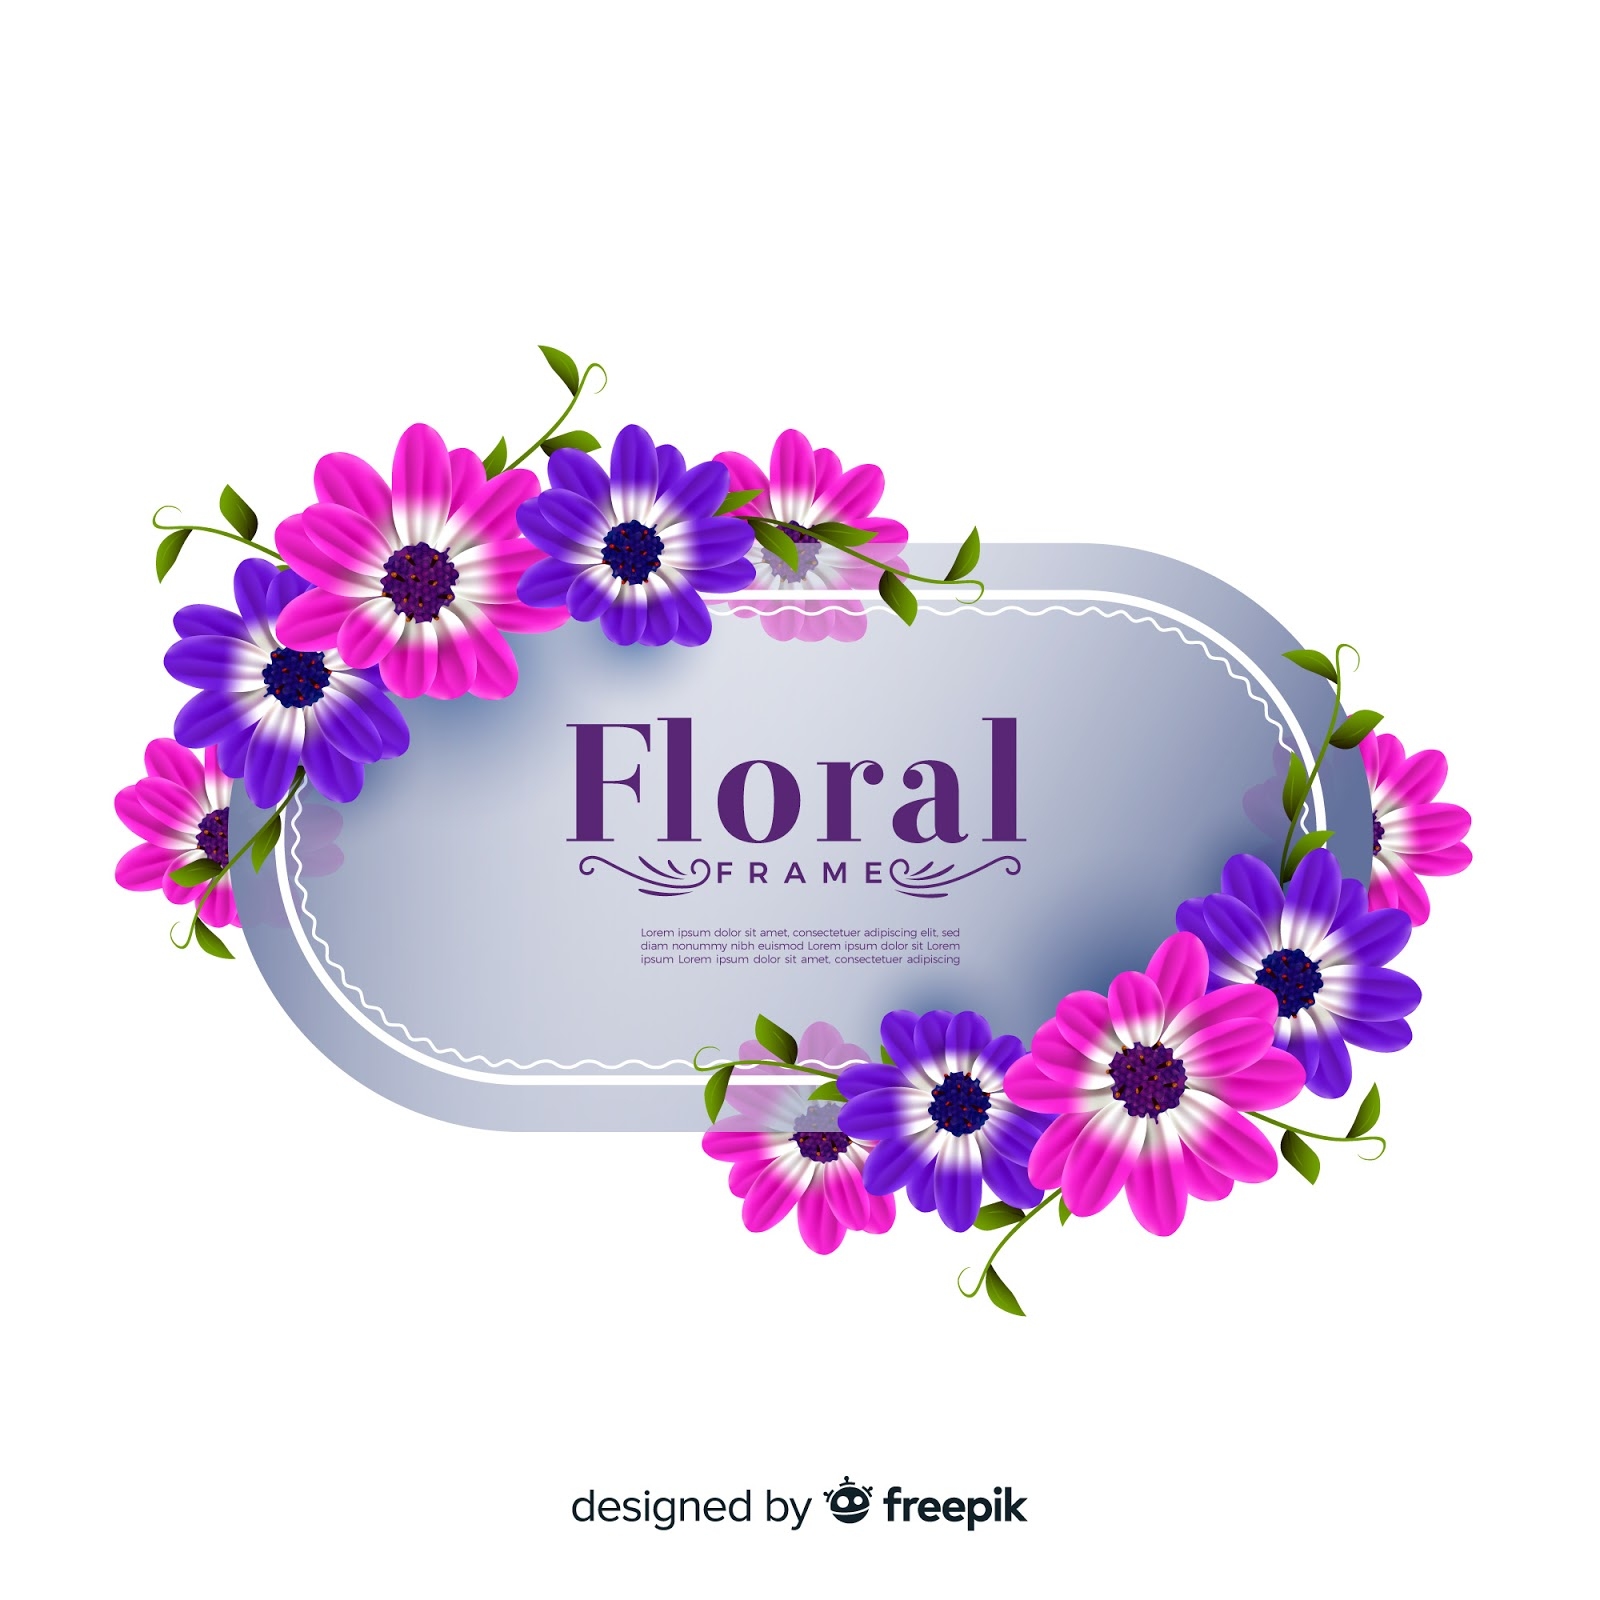 Lovely Floral Frame With Realistic Design Free Download Vector CDR, AI, EPS and PNG Formats